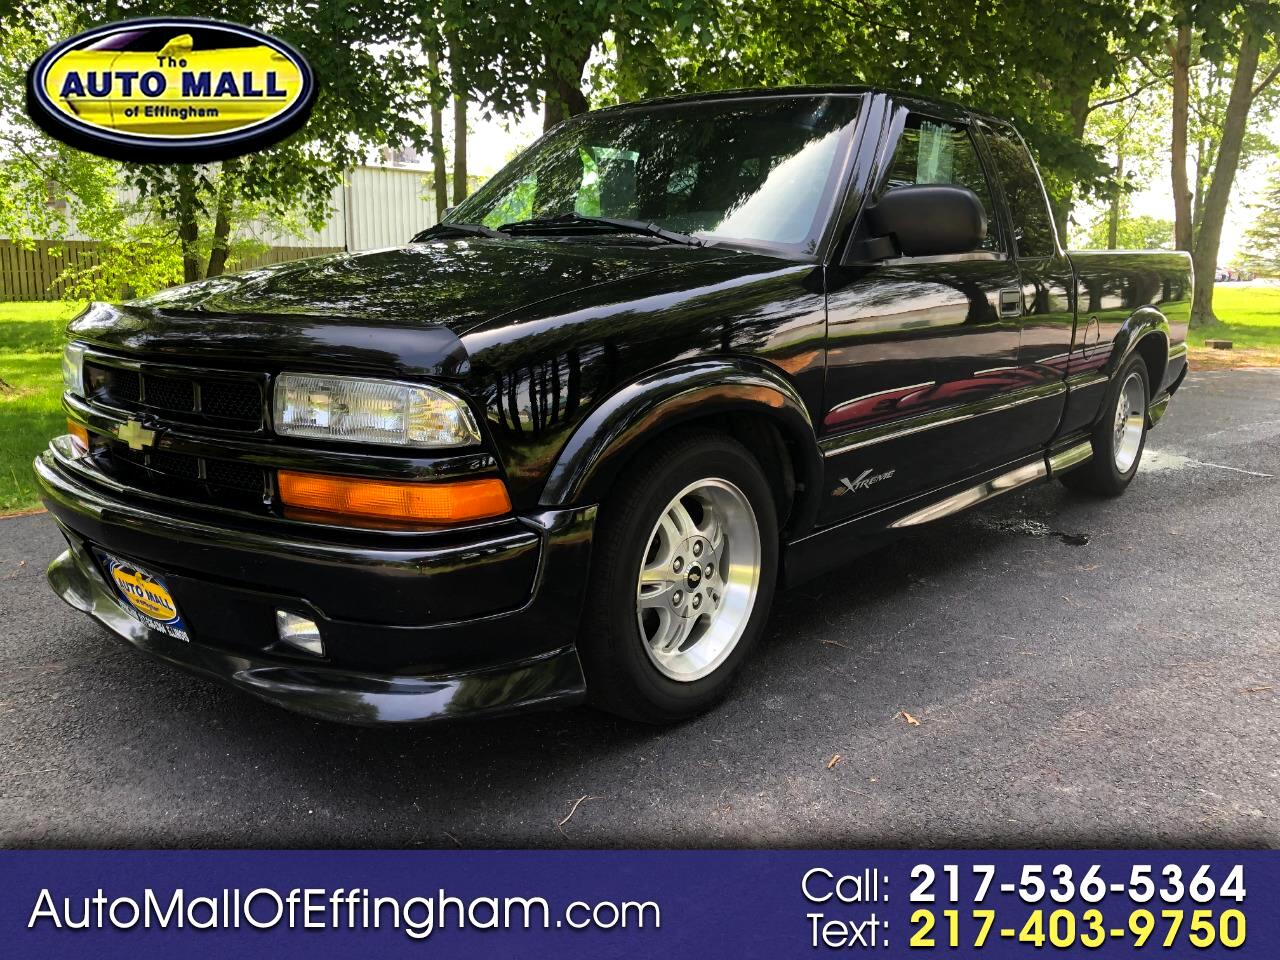 2002 Chevrolet S-10 Ext. Cab 2WD